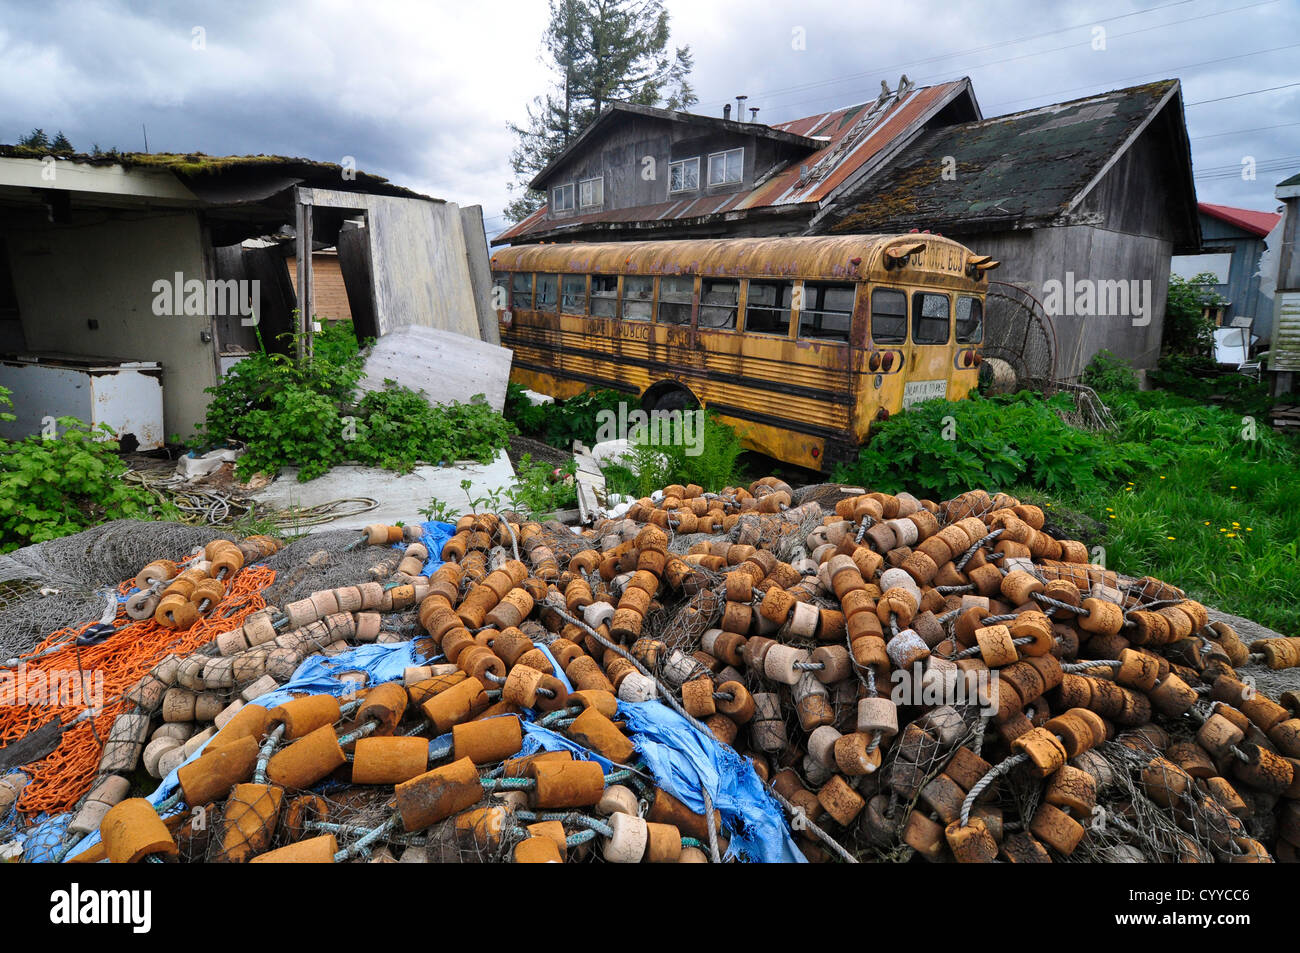 Fishing net and school bus in the backyard of a house in the Tlingit native community of Kake, Alaska. - Stock Image